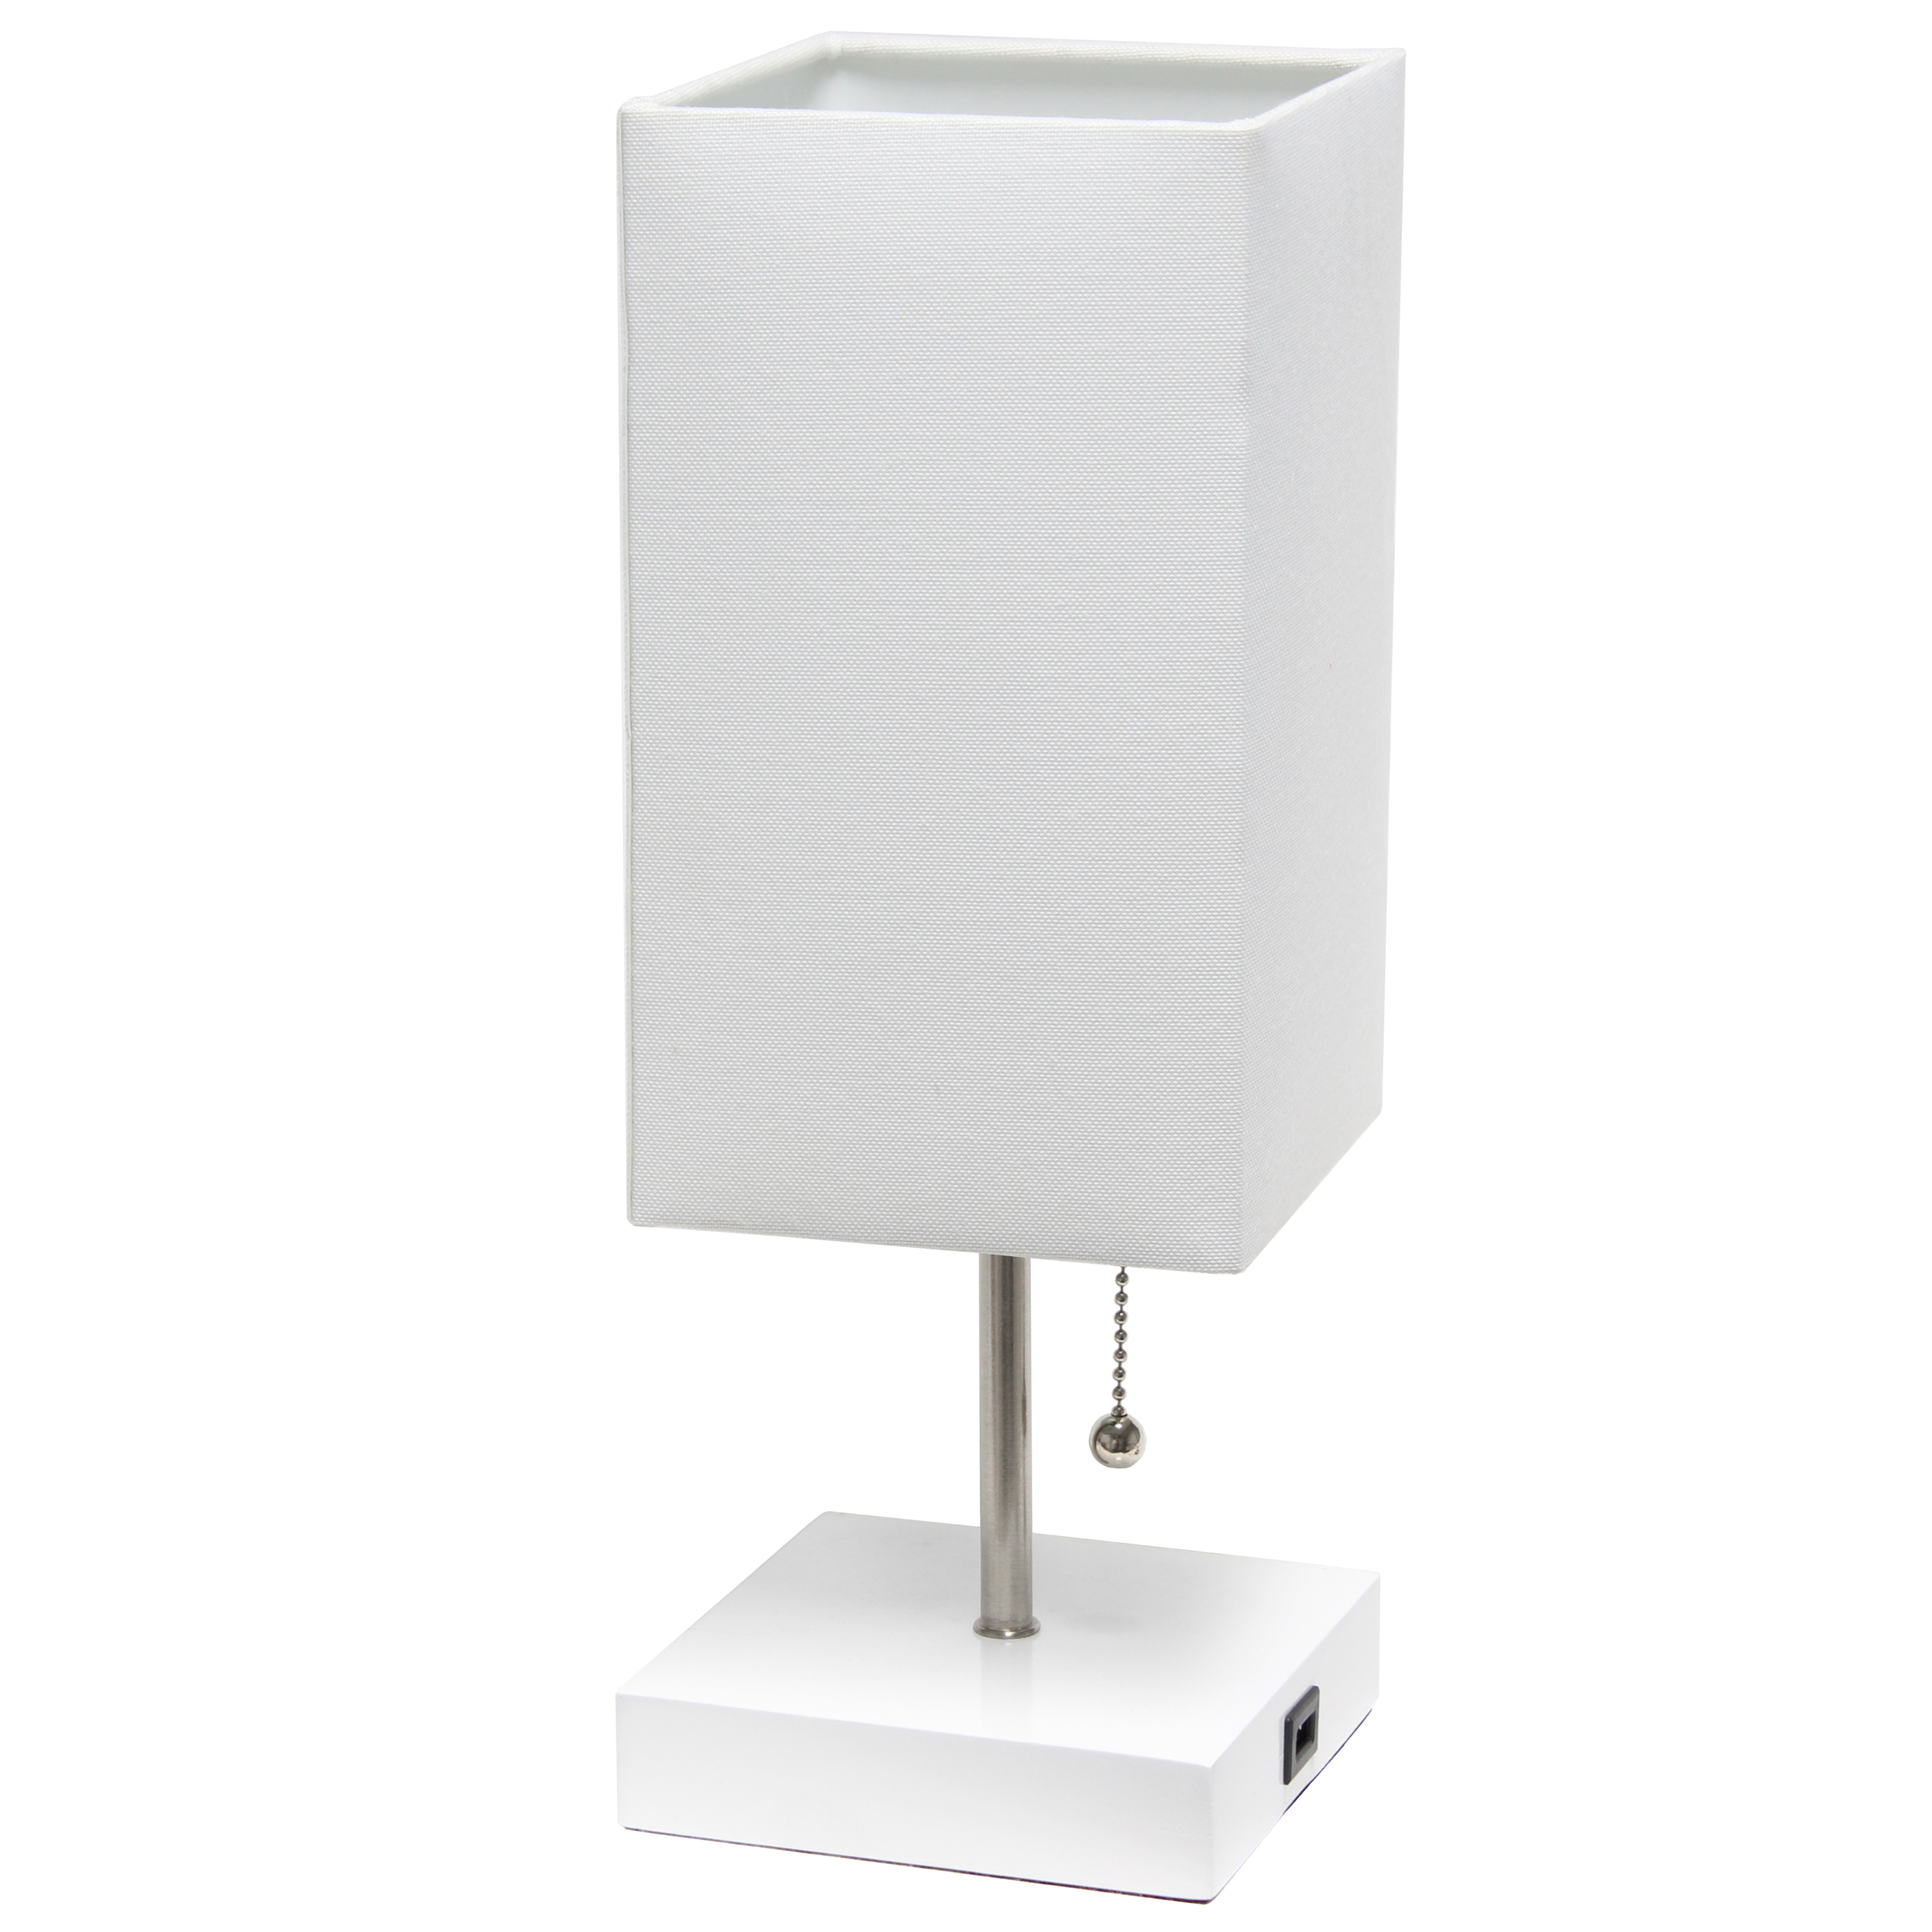 Simple Designs Petite White Stick Lamp with USB Charging Port and Fabric Shade, White